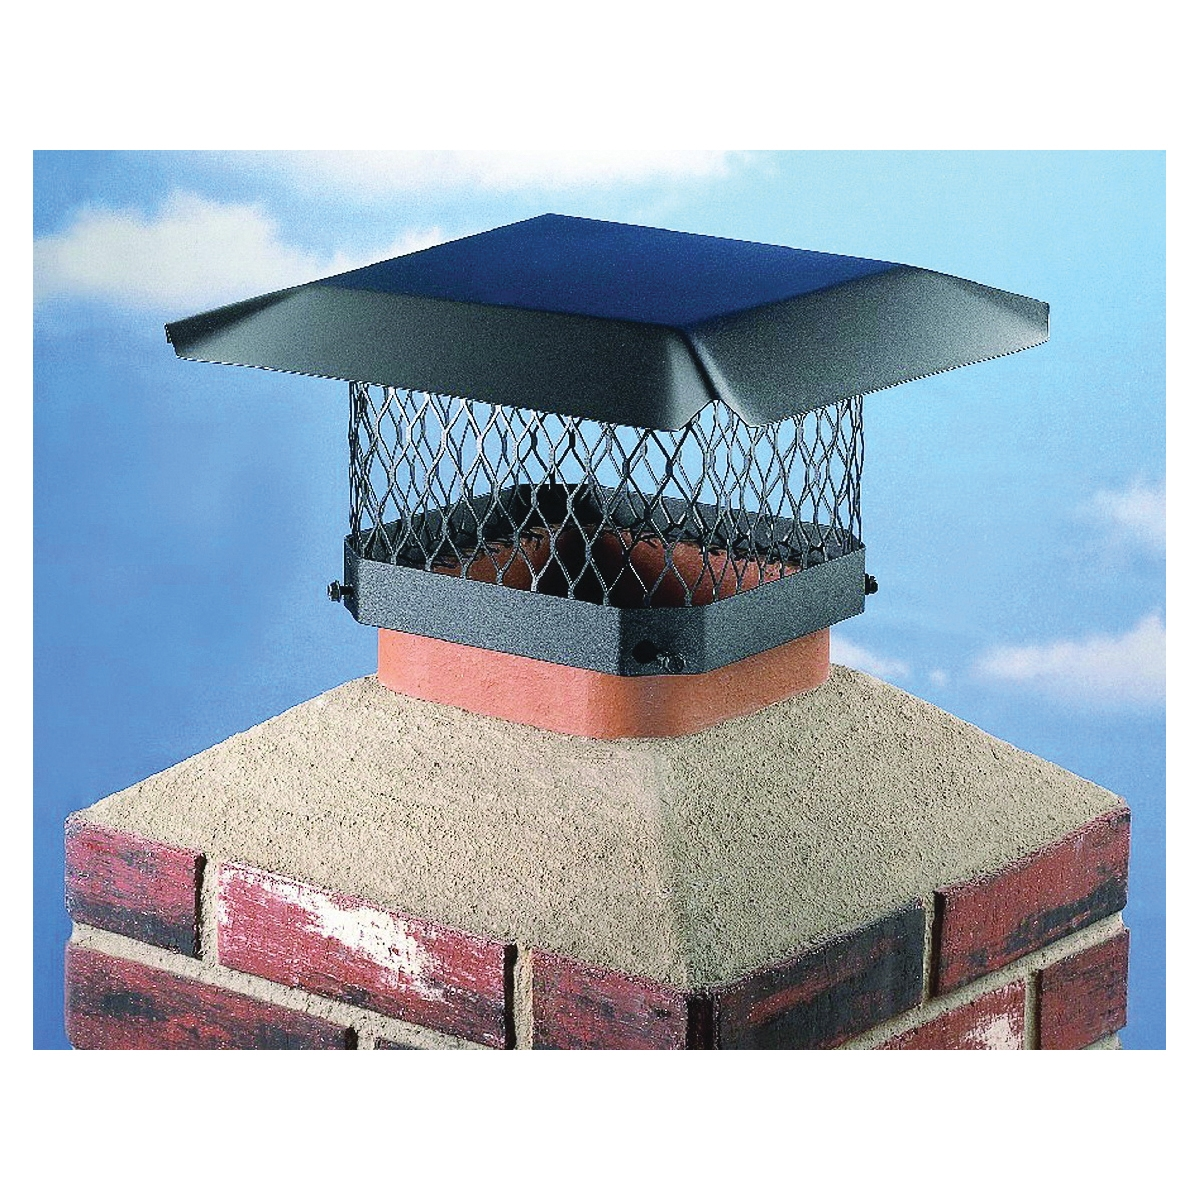 Picture of SHELTER SC99 Shelter Chimney Cap, Steel, Black, Powder-Coated, Fits Duct Size: 7-1/2 x 7-1/2 to 9-1/2 x 9-1/2 in